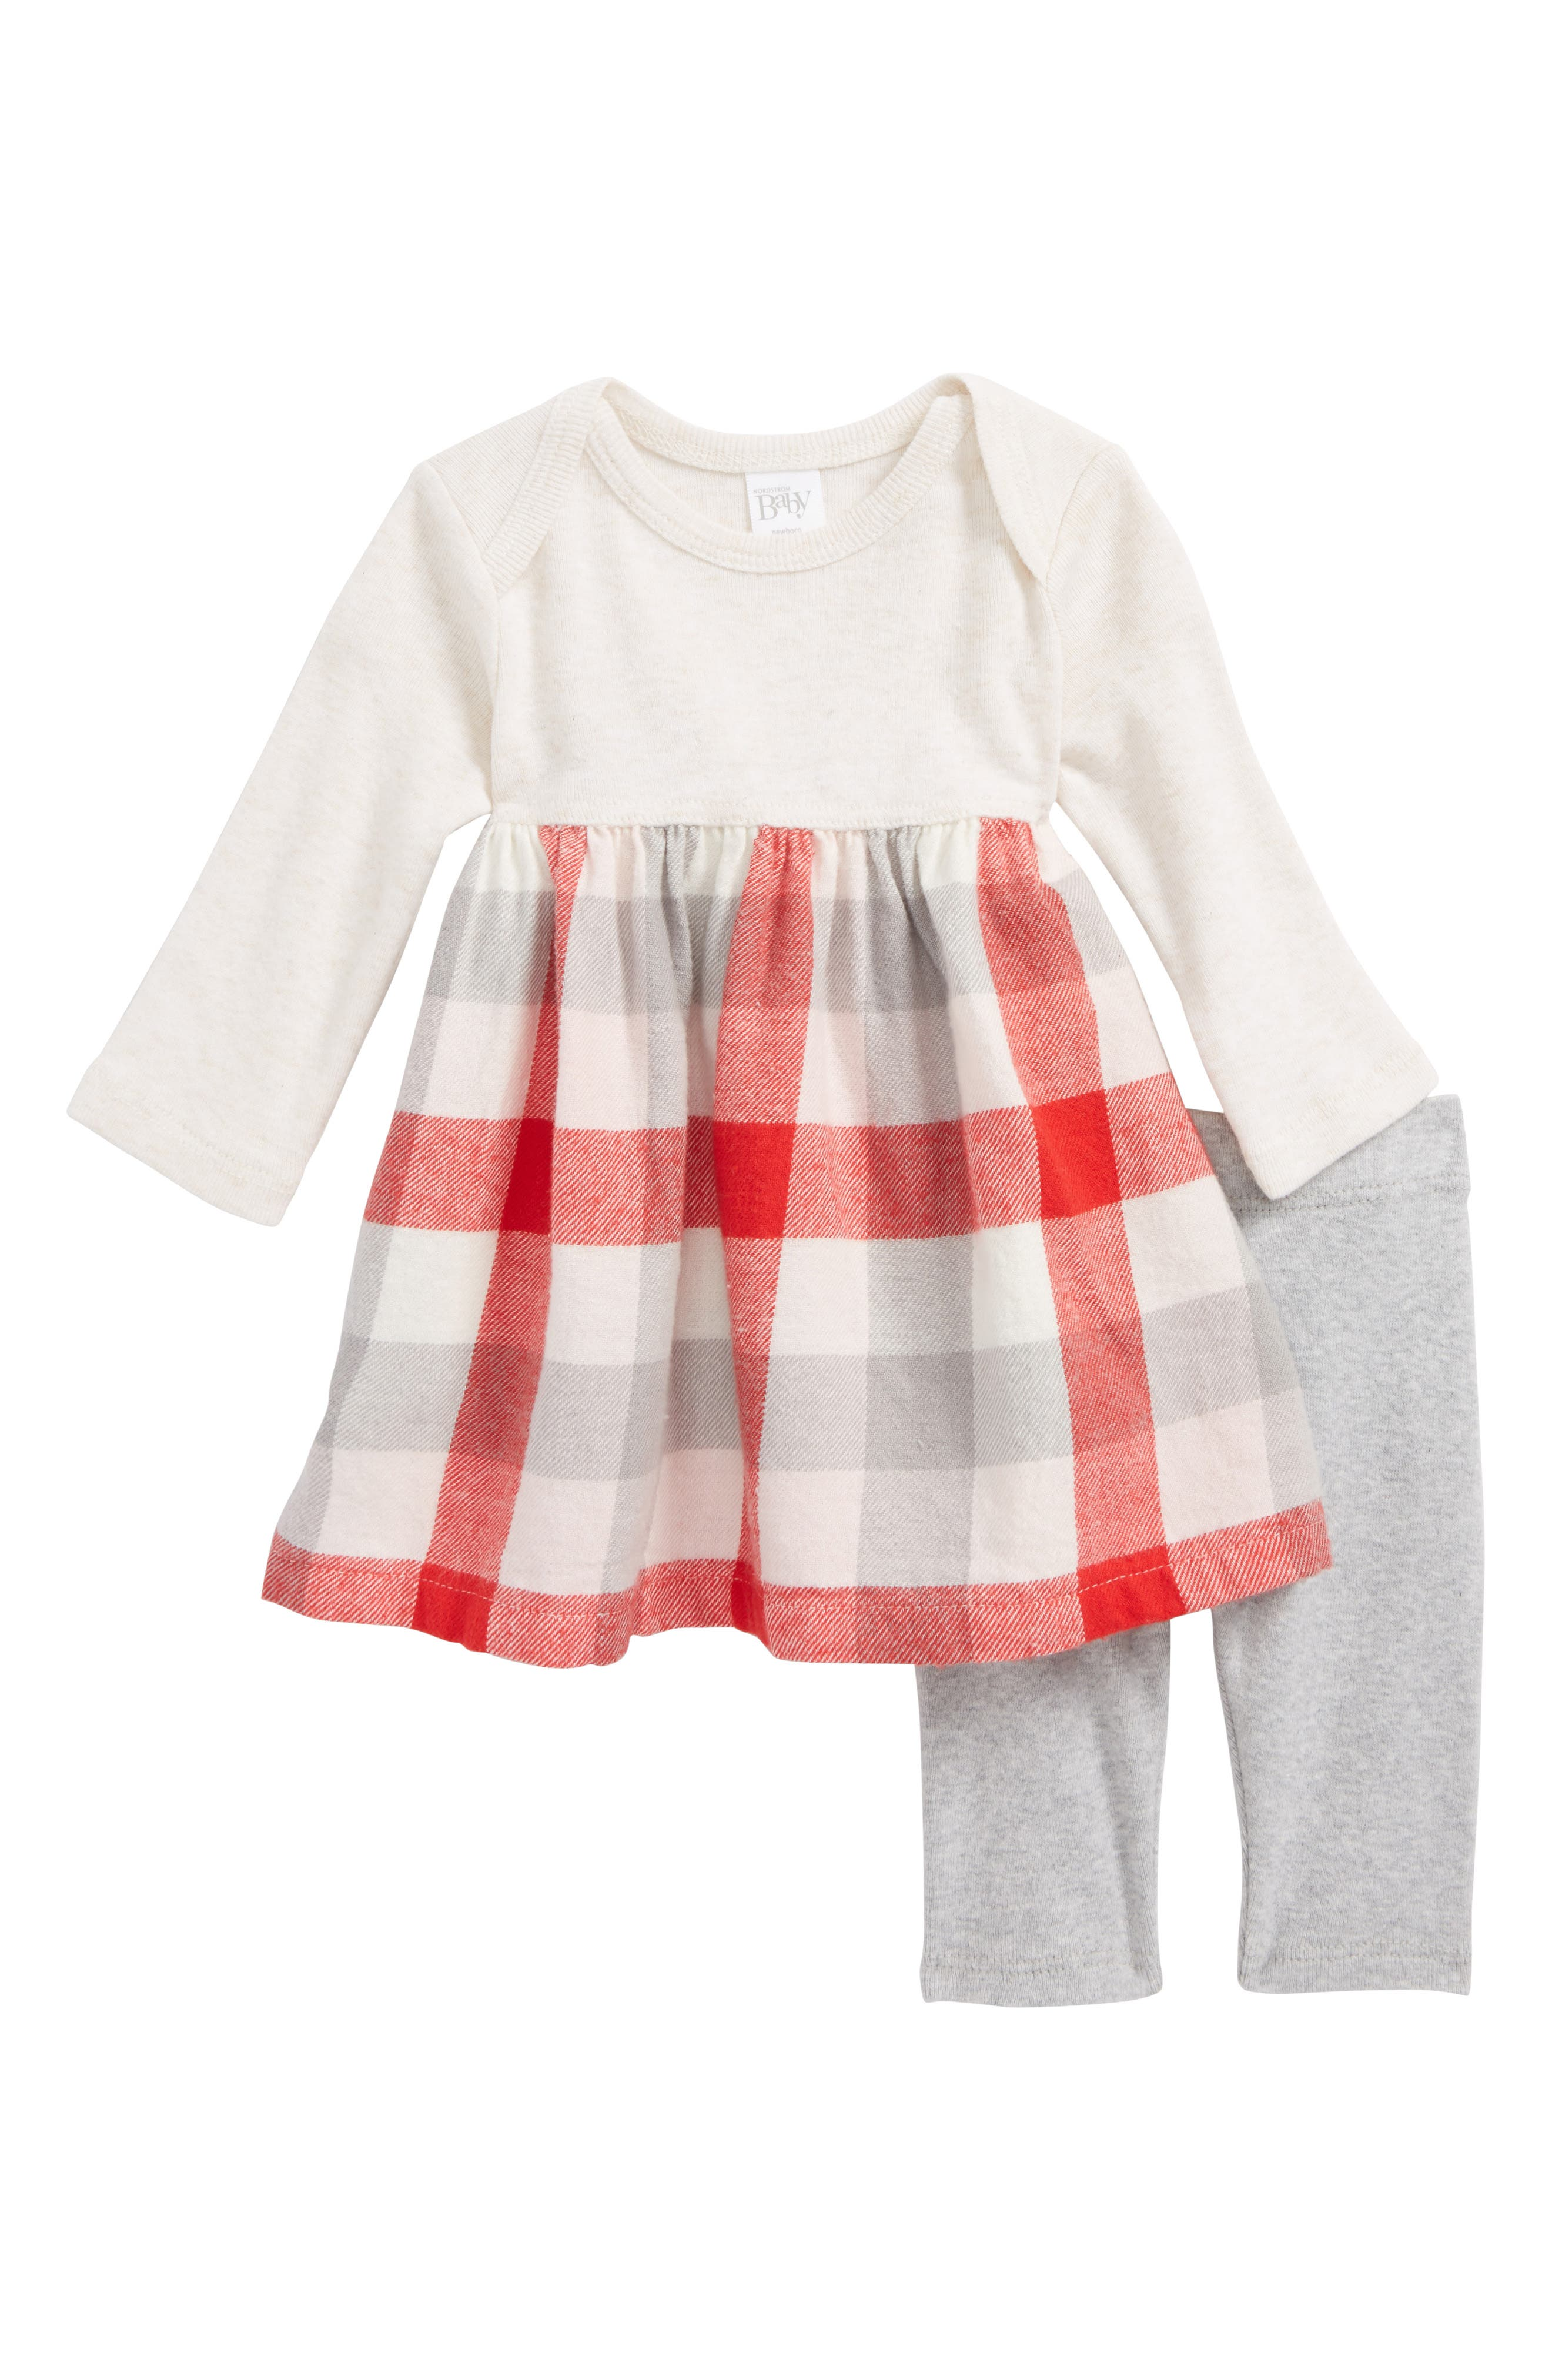 Nordstrom Baby Woven Dress & Leggings Set (Baby Girls)